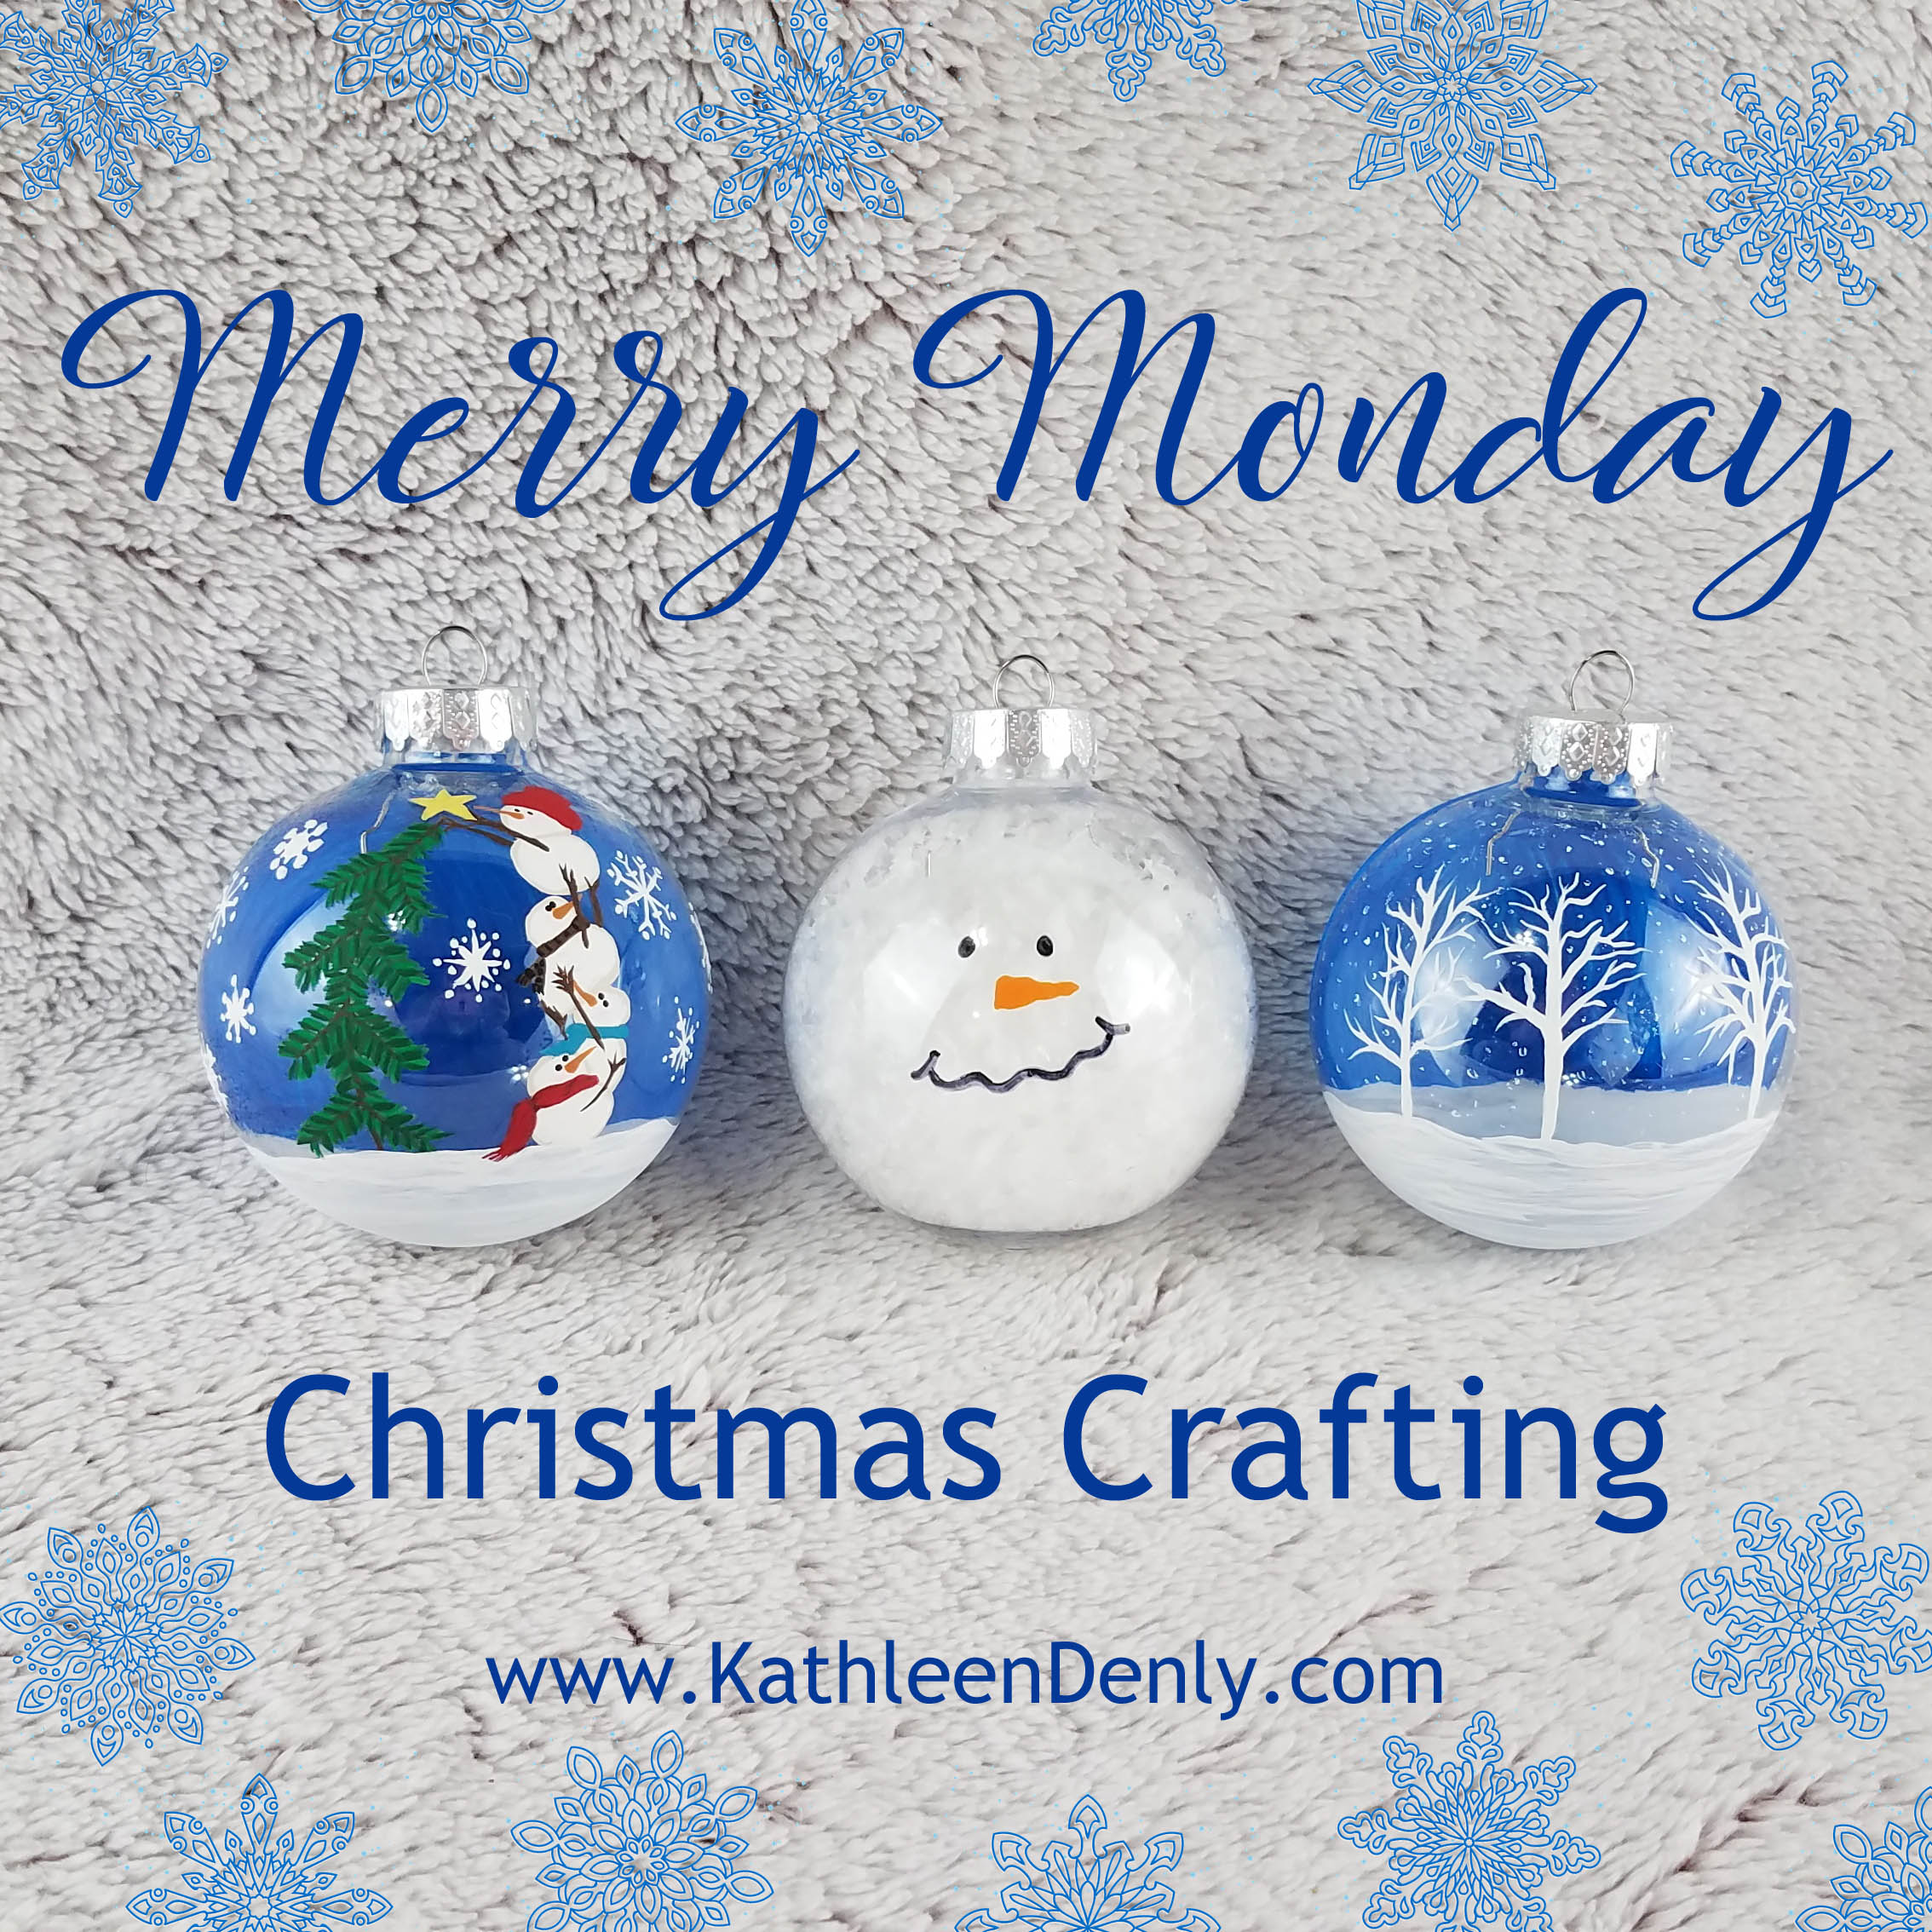 Merry Monday - Christmas Crafting